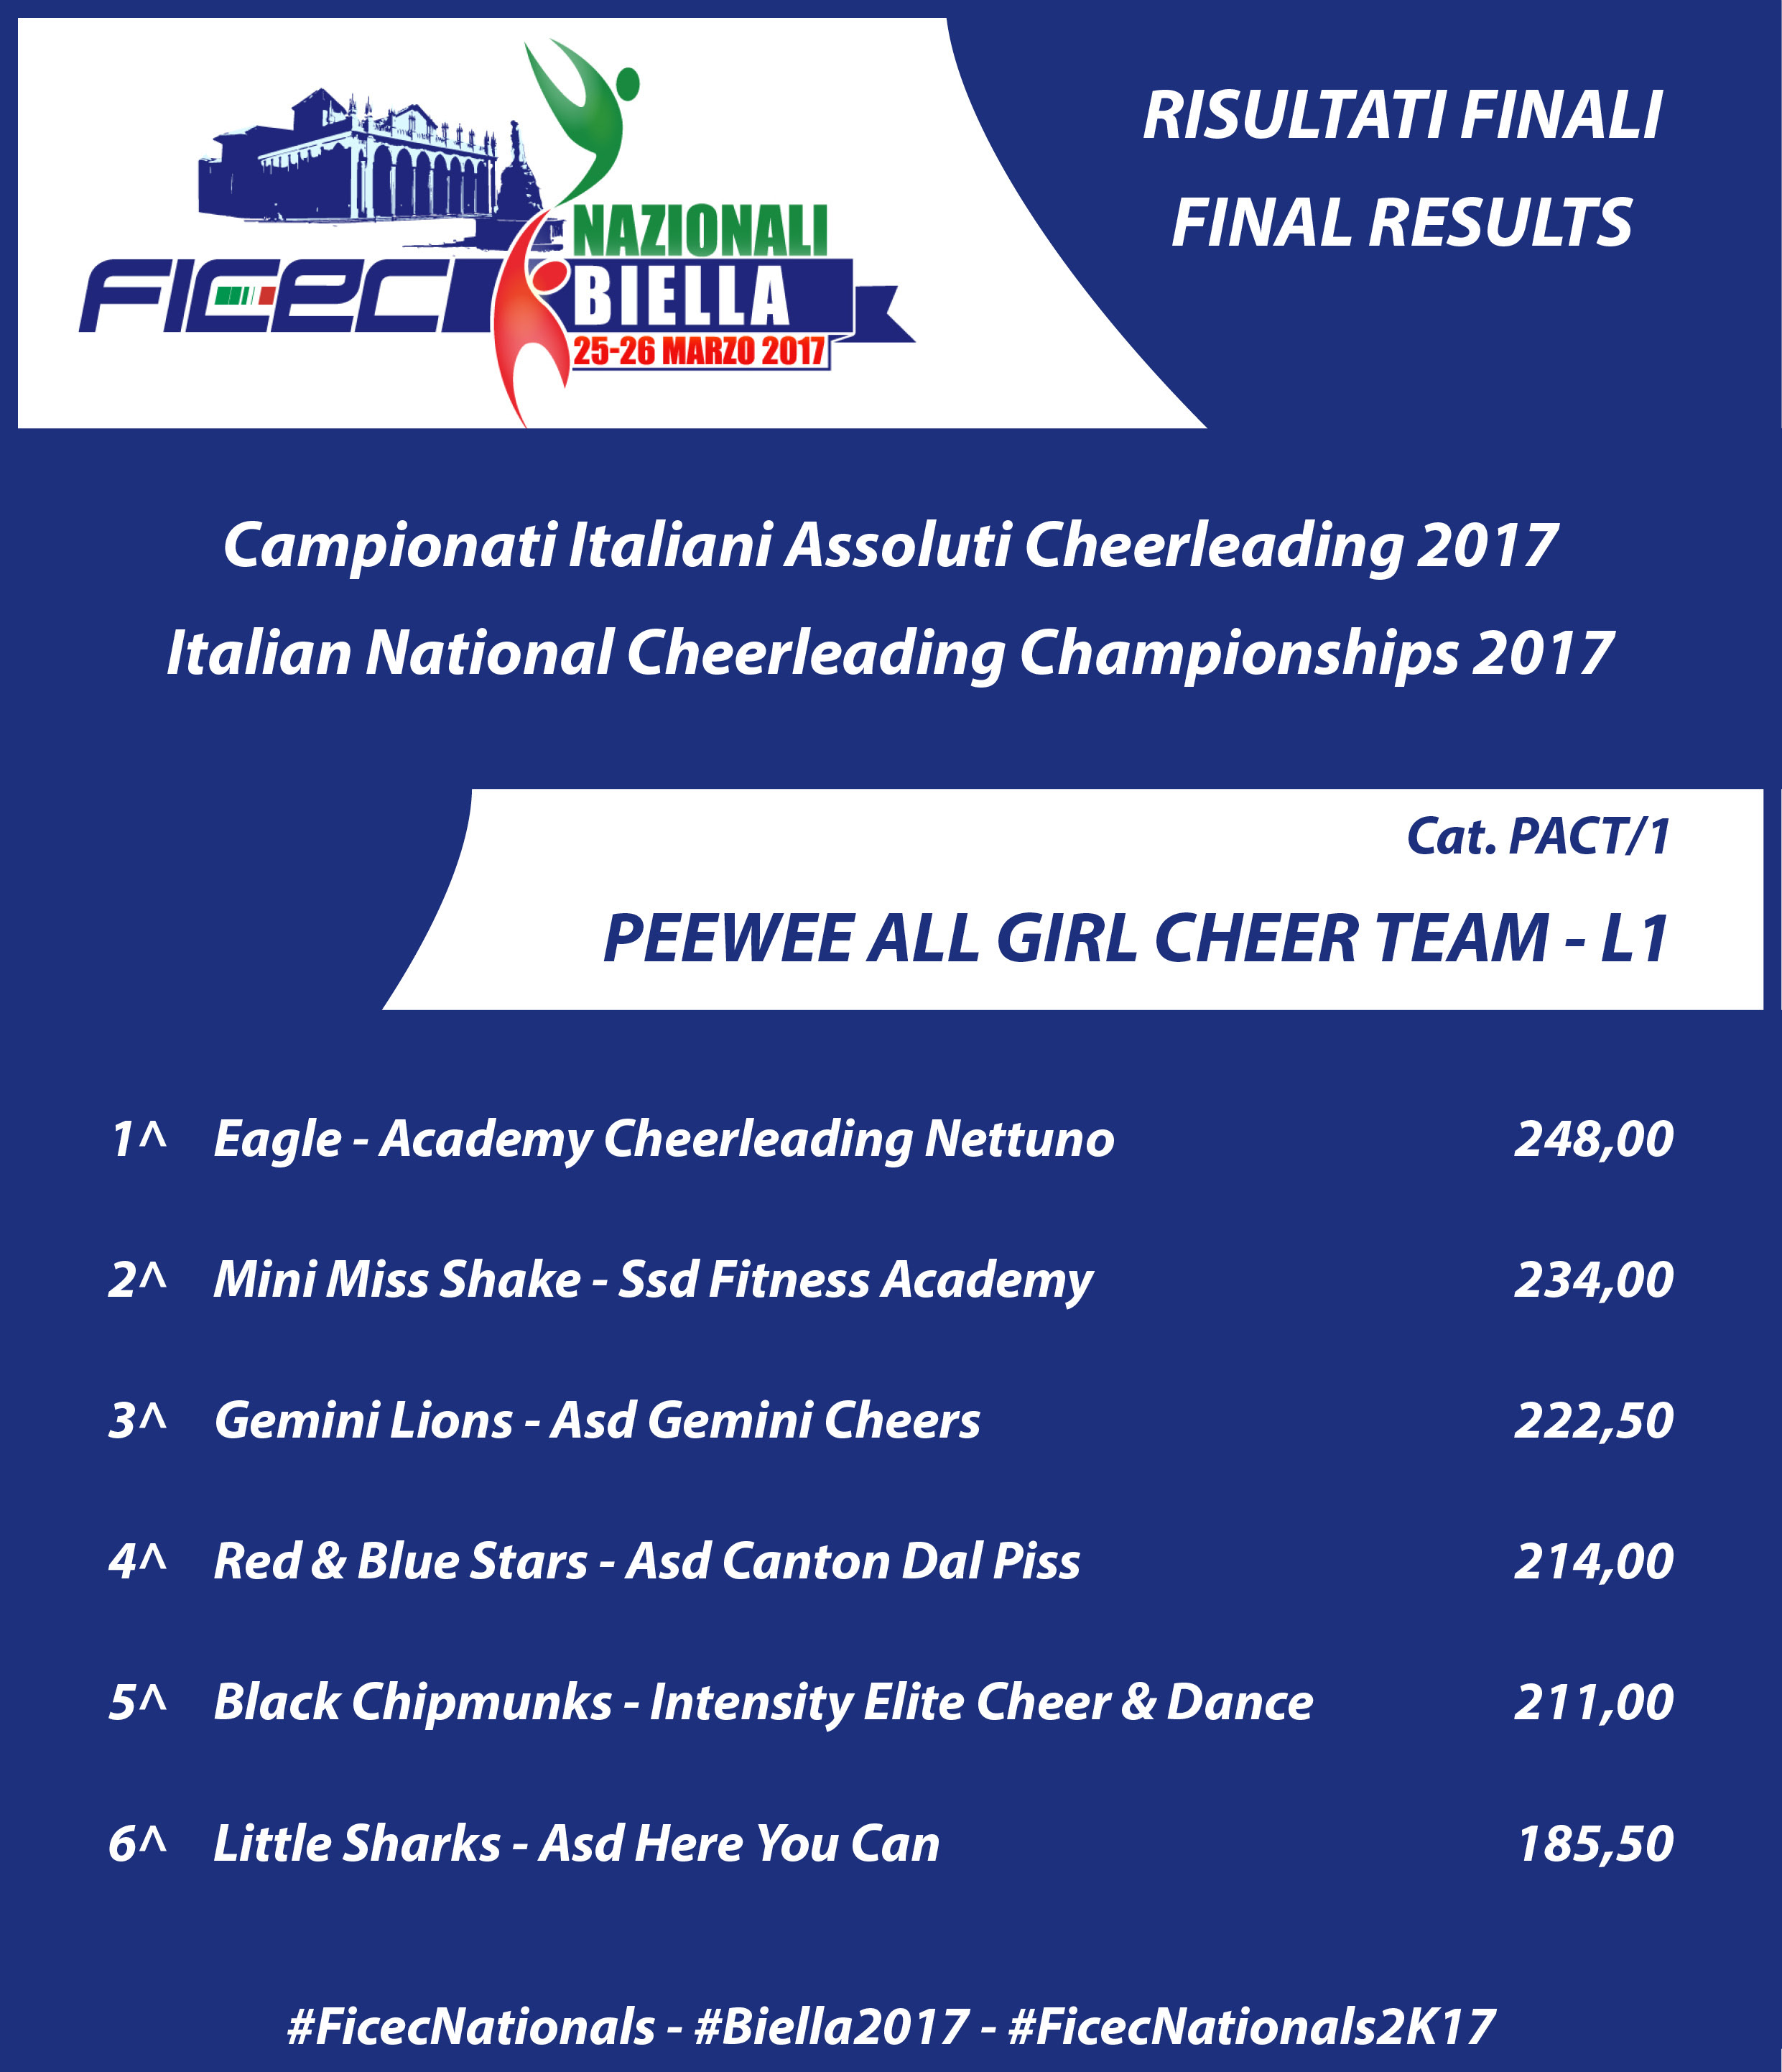 RESULTS nationals 2017 PACT 1